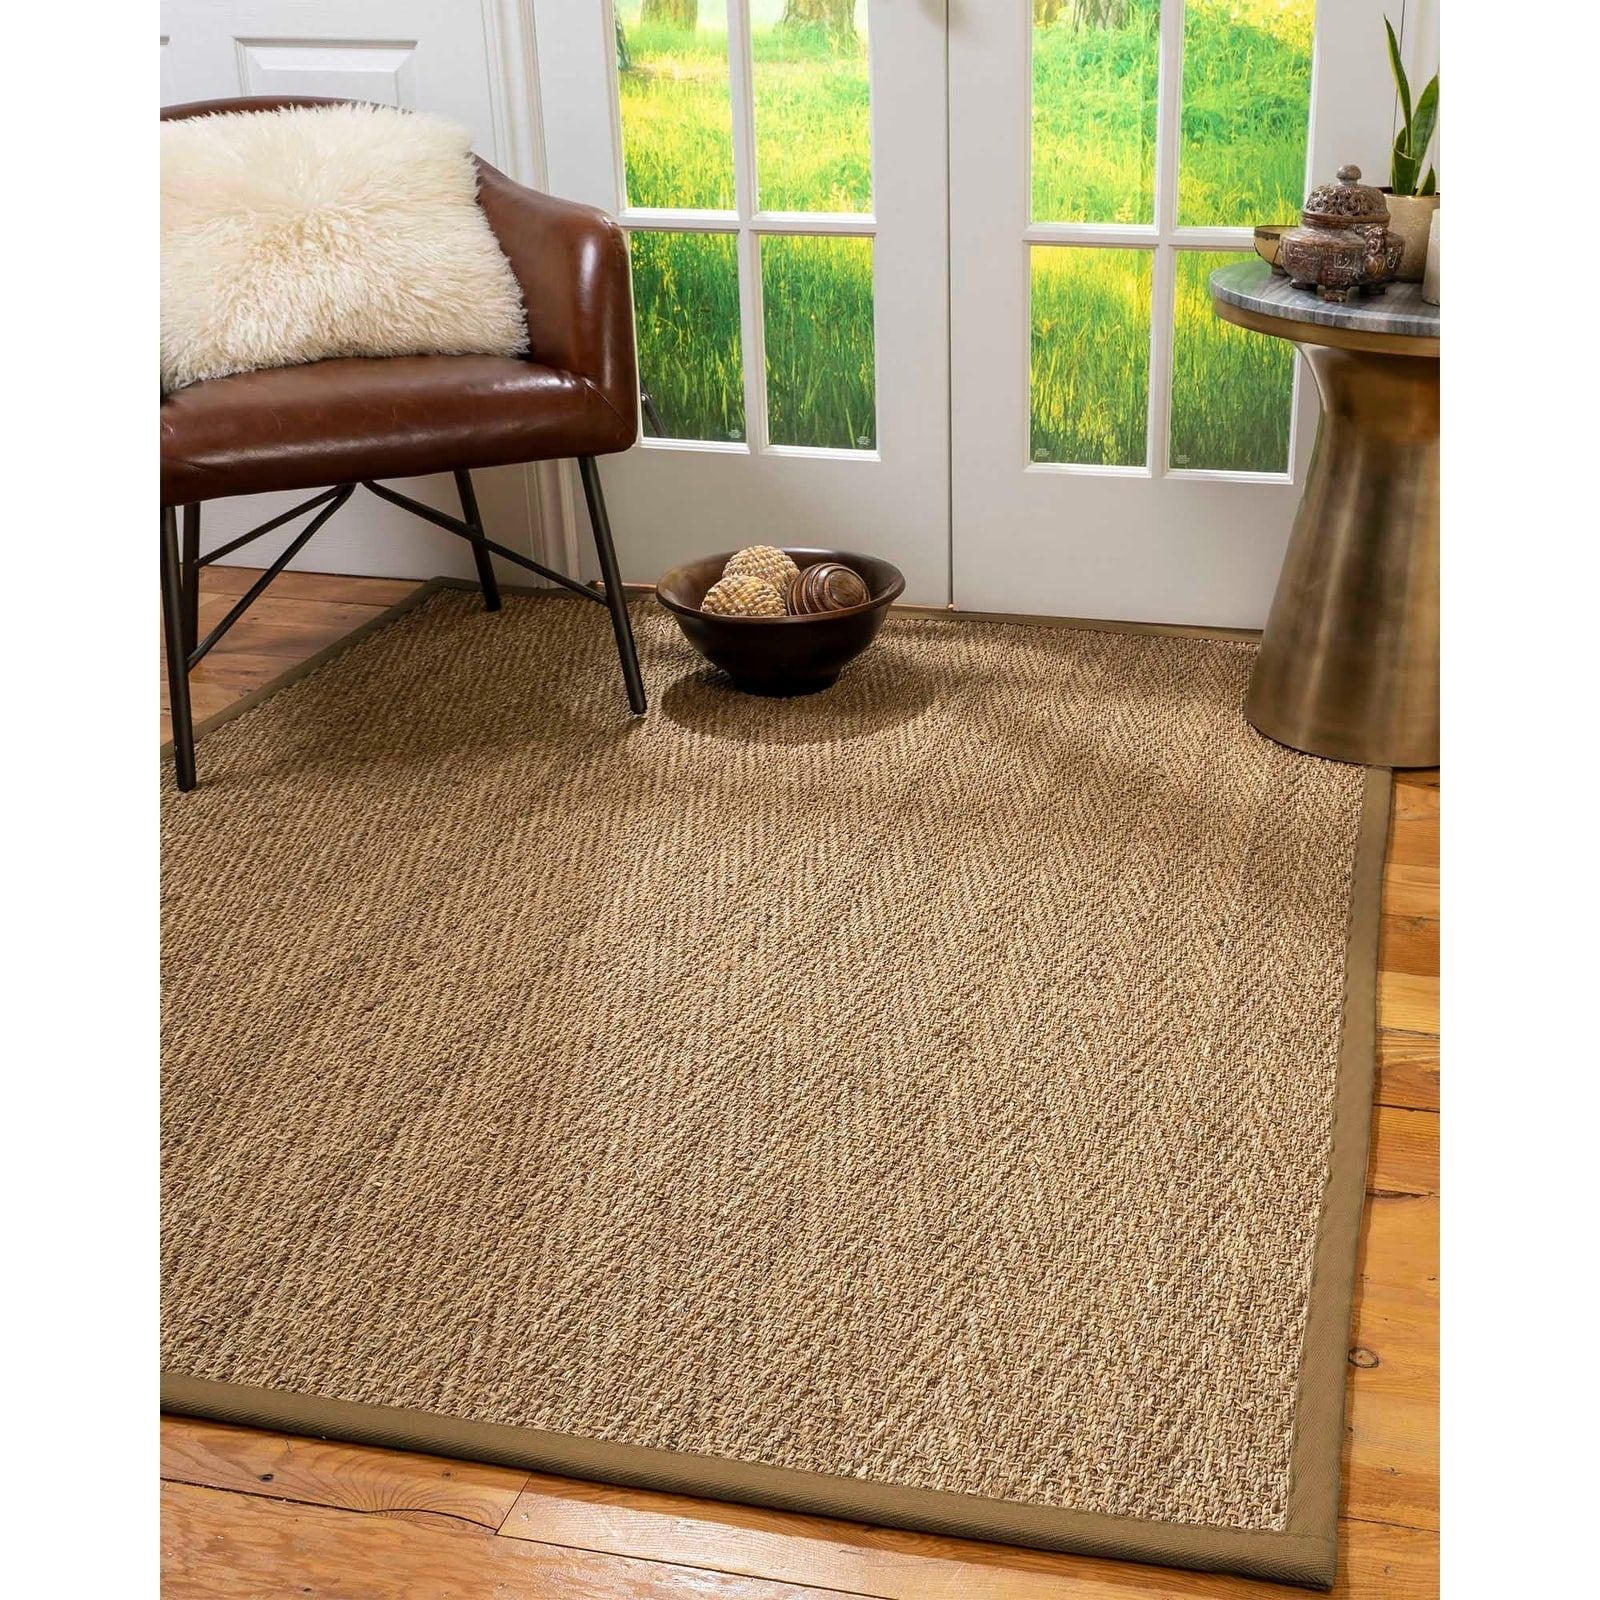 Natural Area Rugs 100 Natural Fiber Handmade Beach Natural